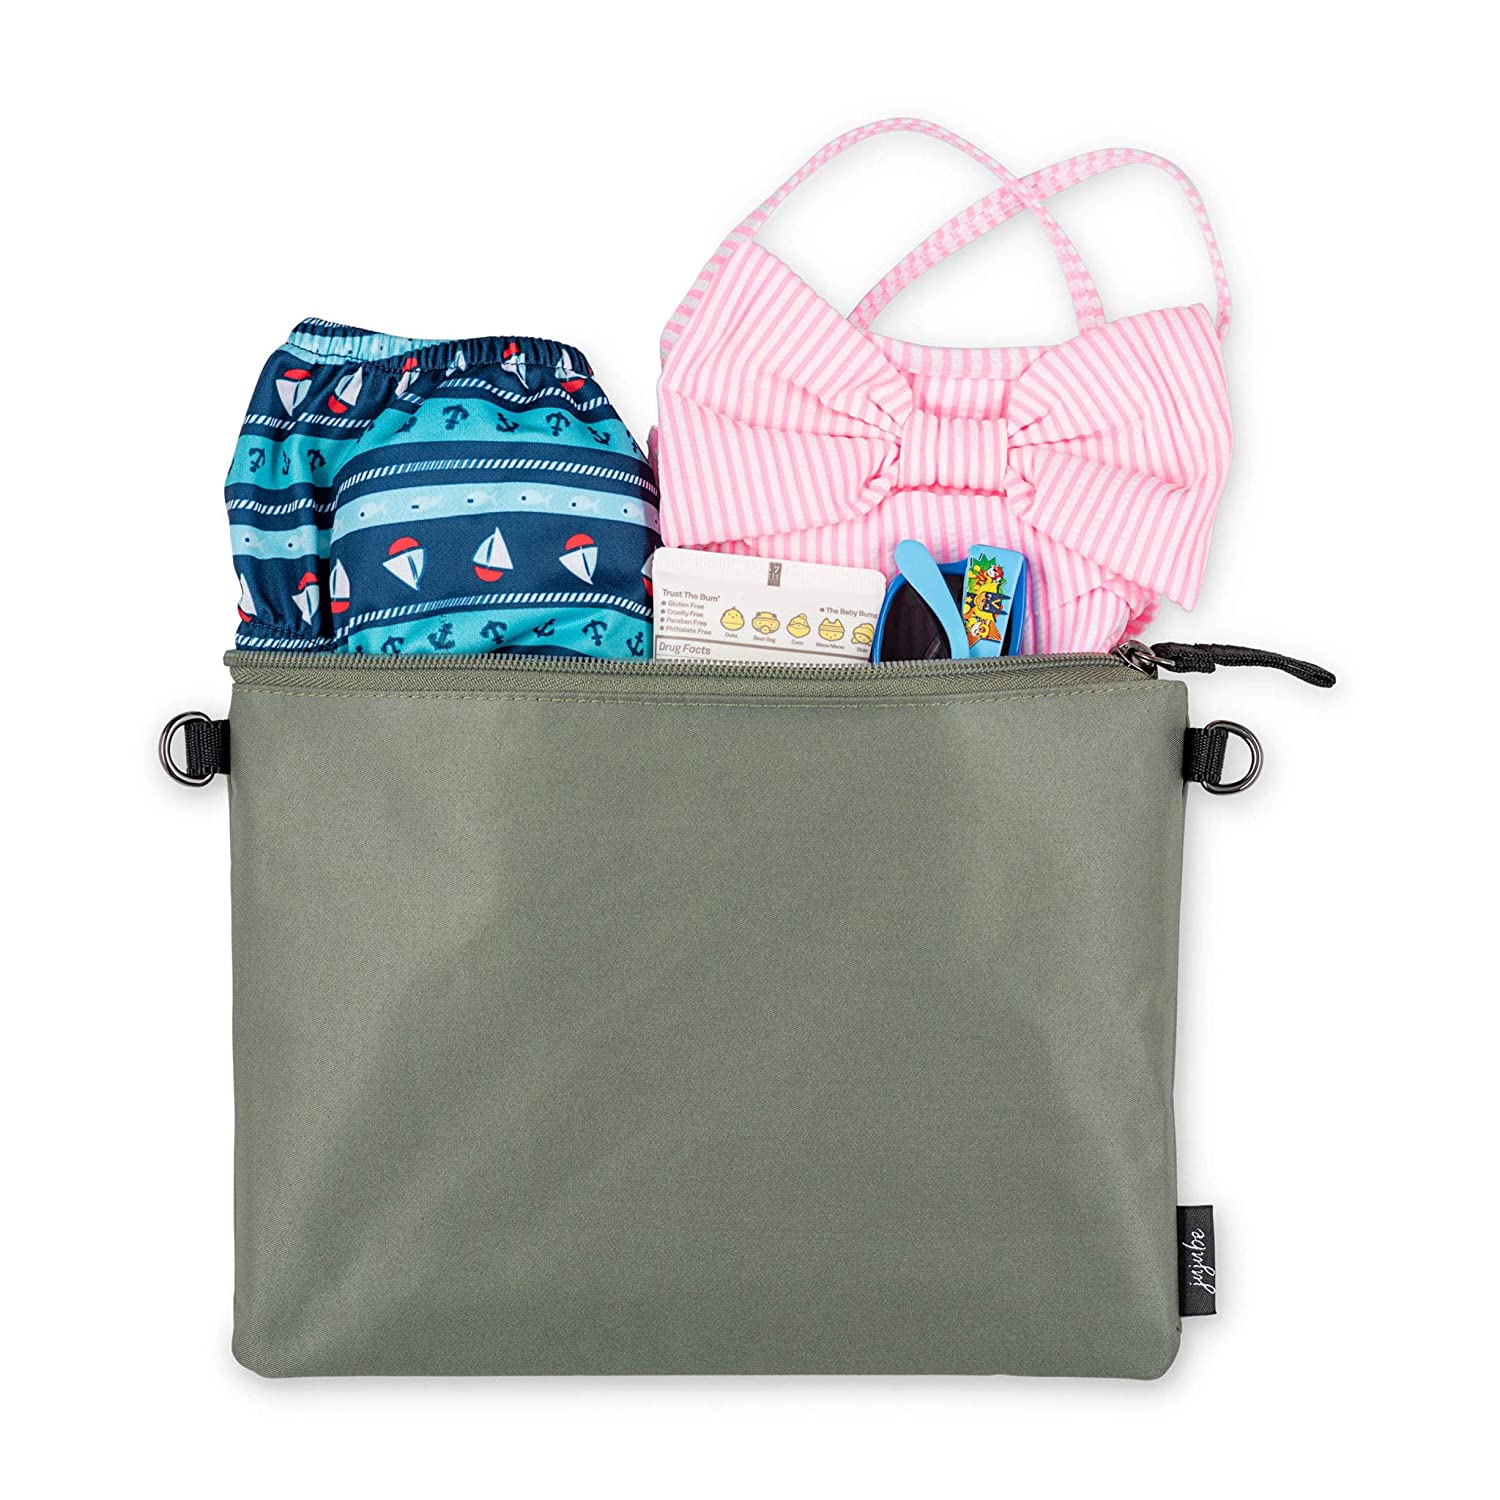 Glacier Grey Baby Strollers Waterproof Reusable Bags On The Go 3-in-1 Set Organization for Diaper Bags JuJuBe Dry Wet Bags Machine Washable Travel Bags with Zipper Closure